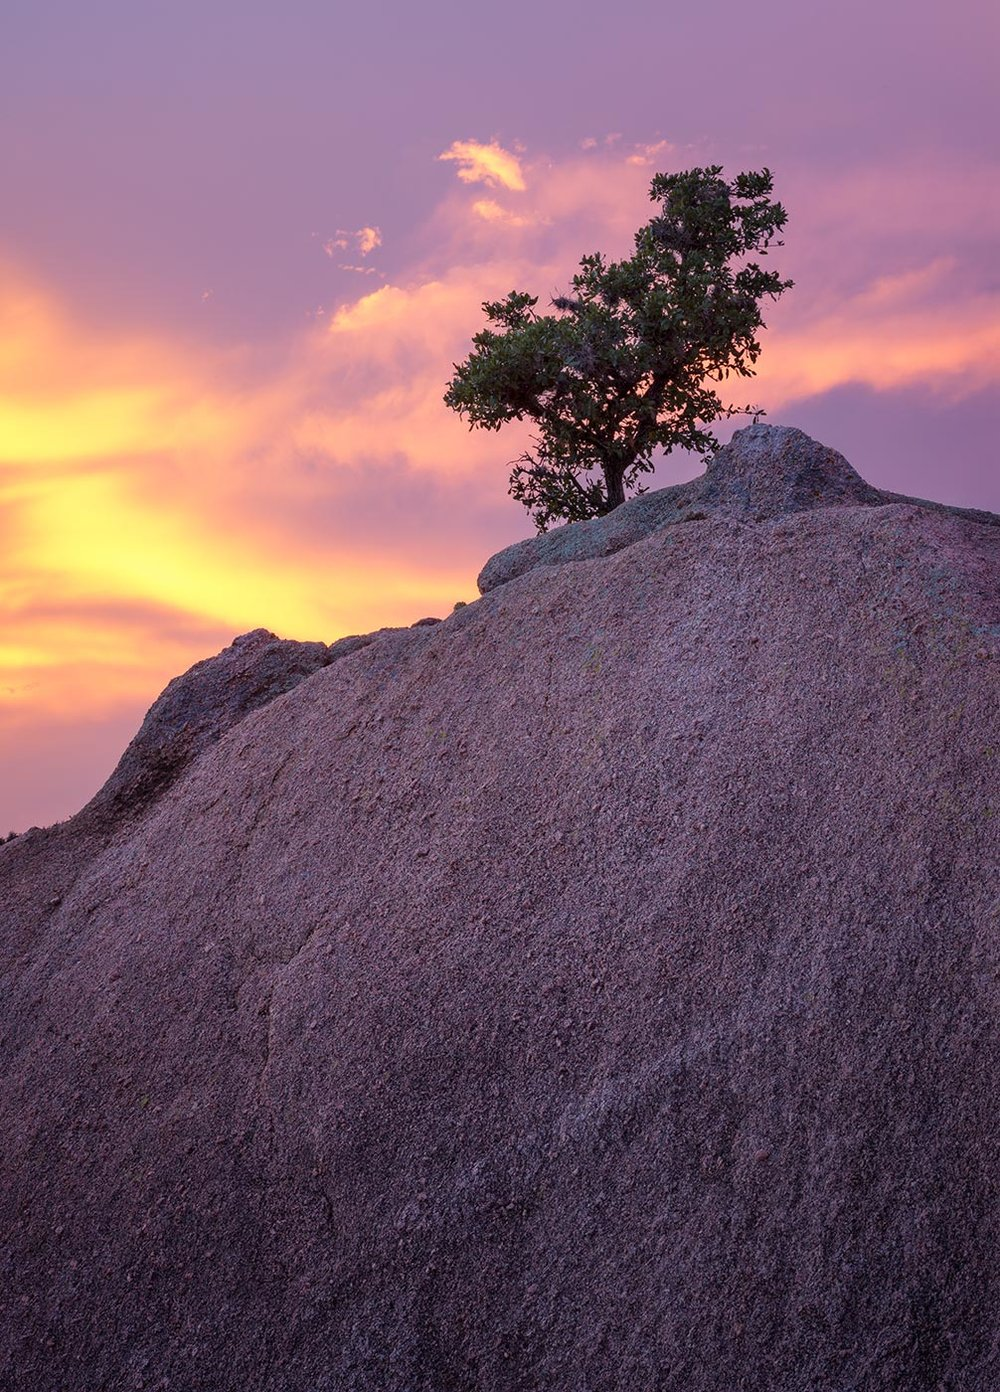 Enchanted-Rock-ABP-Boulder_tree.jpg